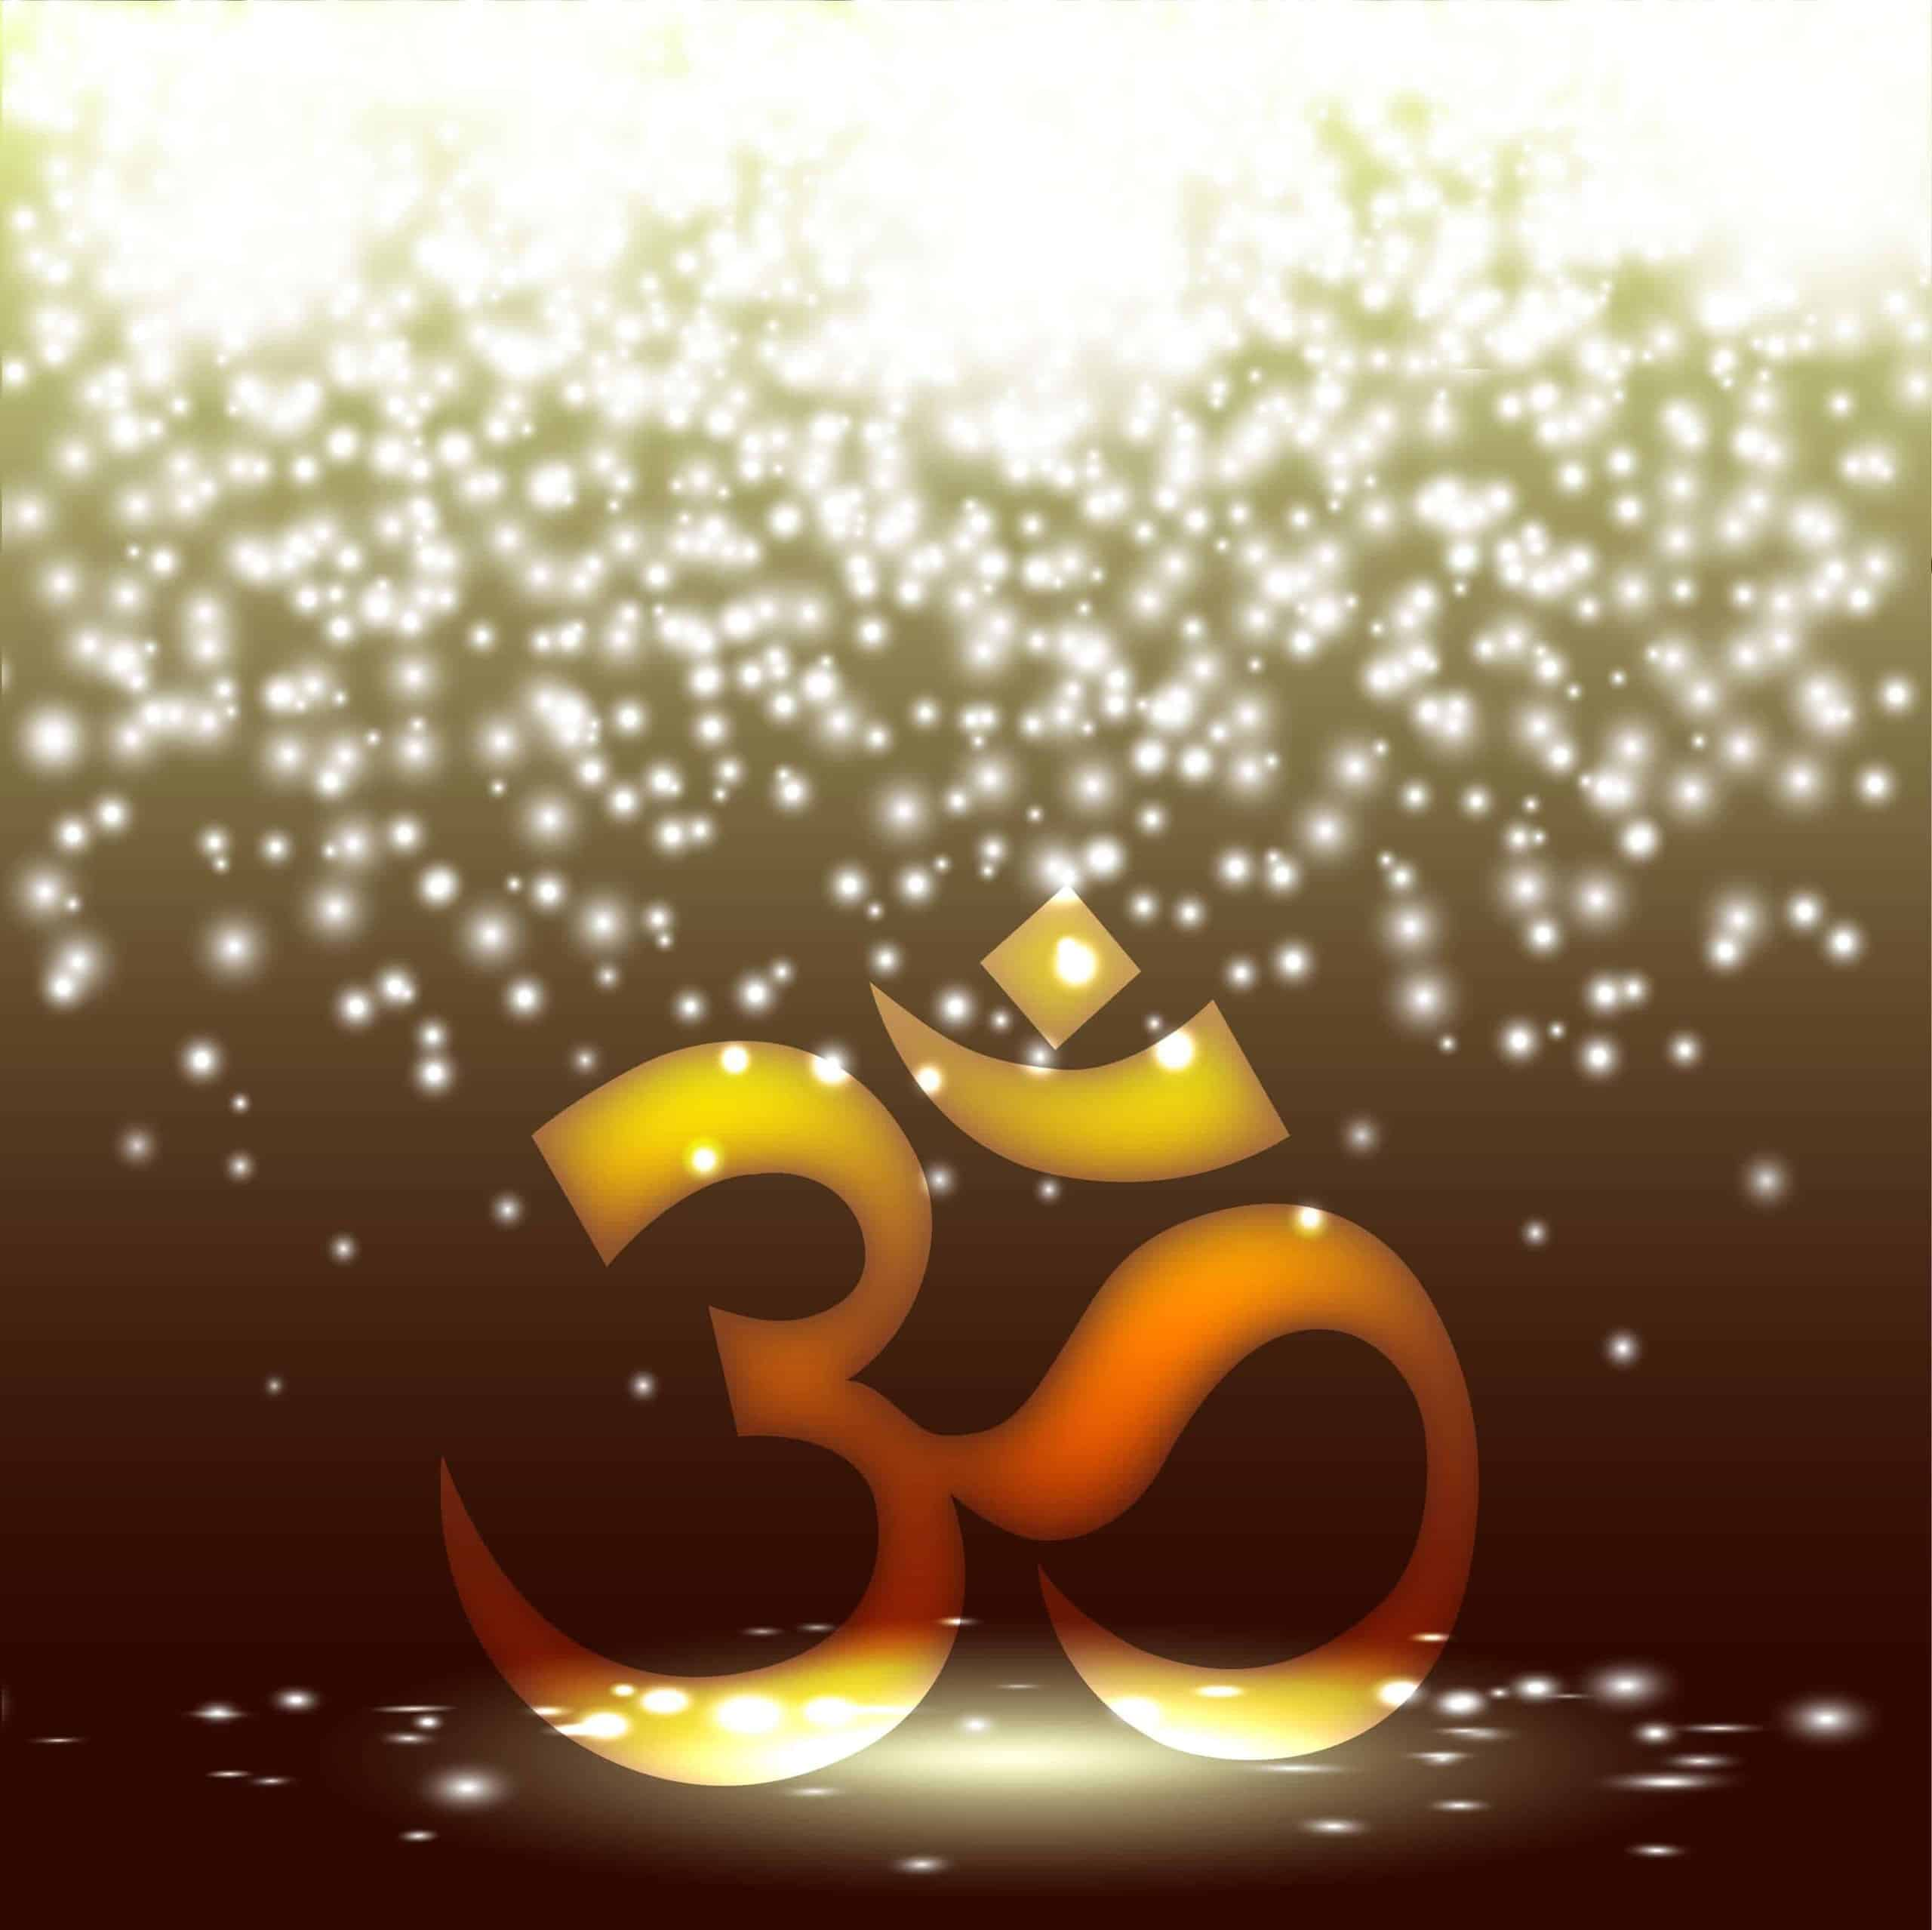 eternal OM/Healing Mantras